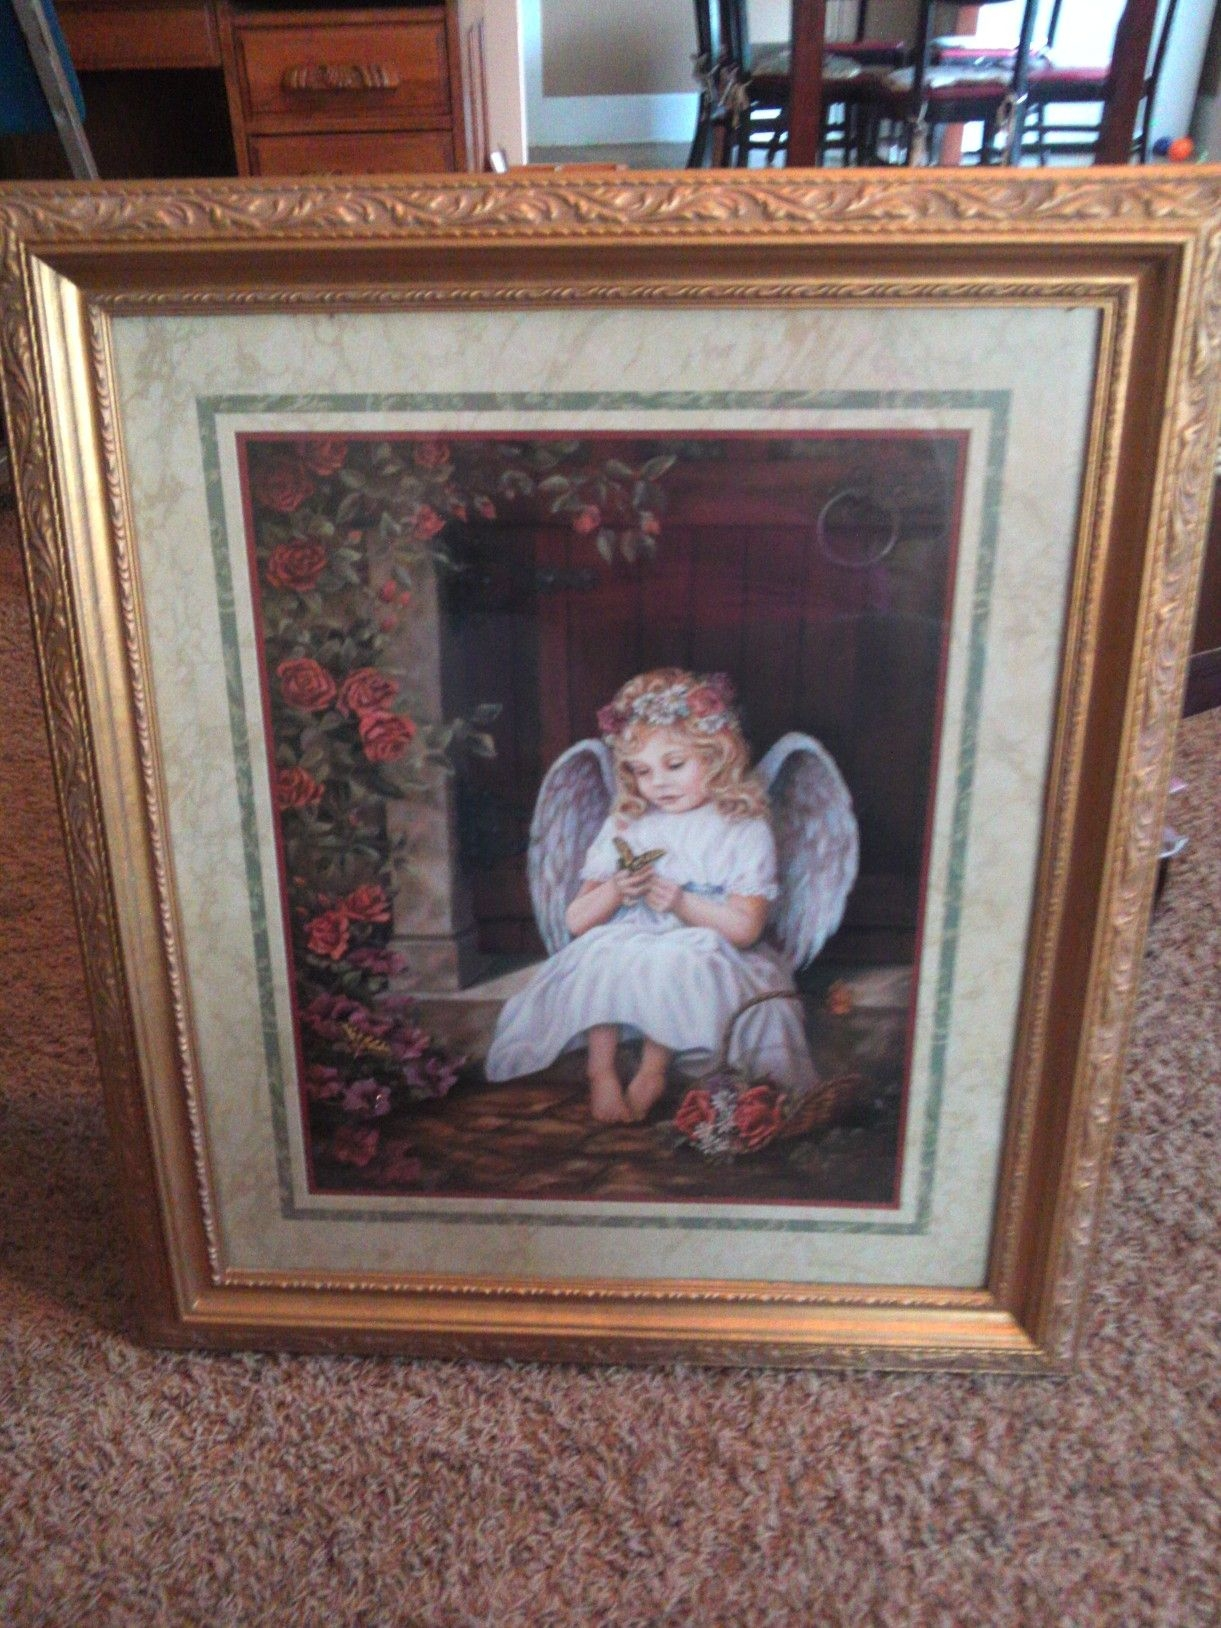 Unbelievable Home Interiors and Gifts Catalog On Beaut Home Interior Angel Portrait In arey S Garage Sale In On Home Interiors and Gifts Catalog